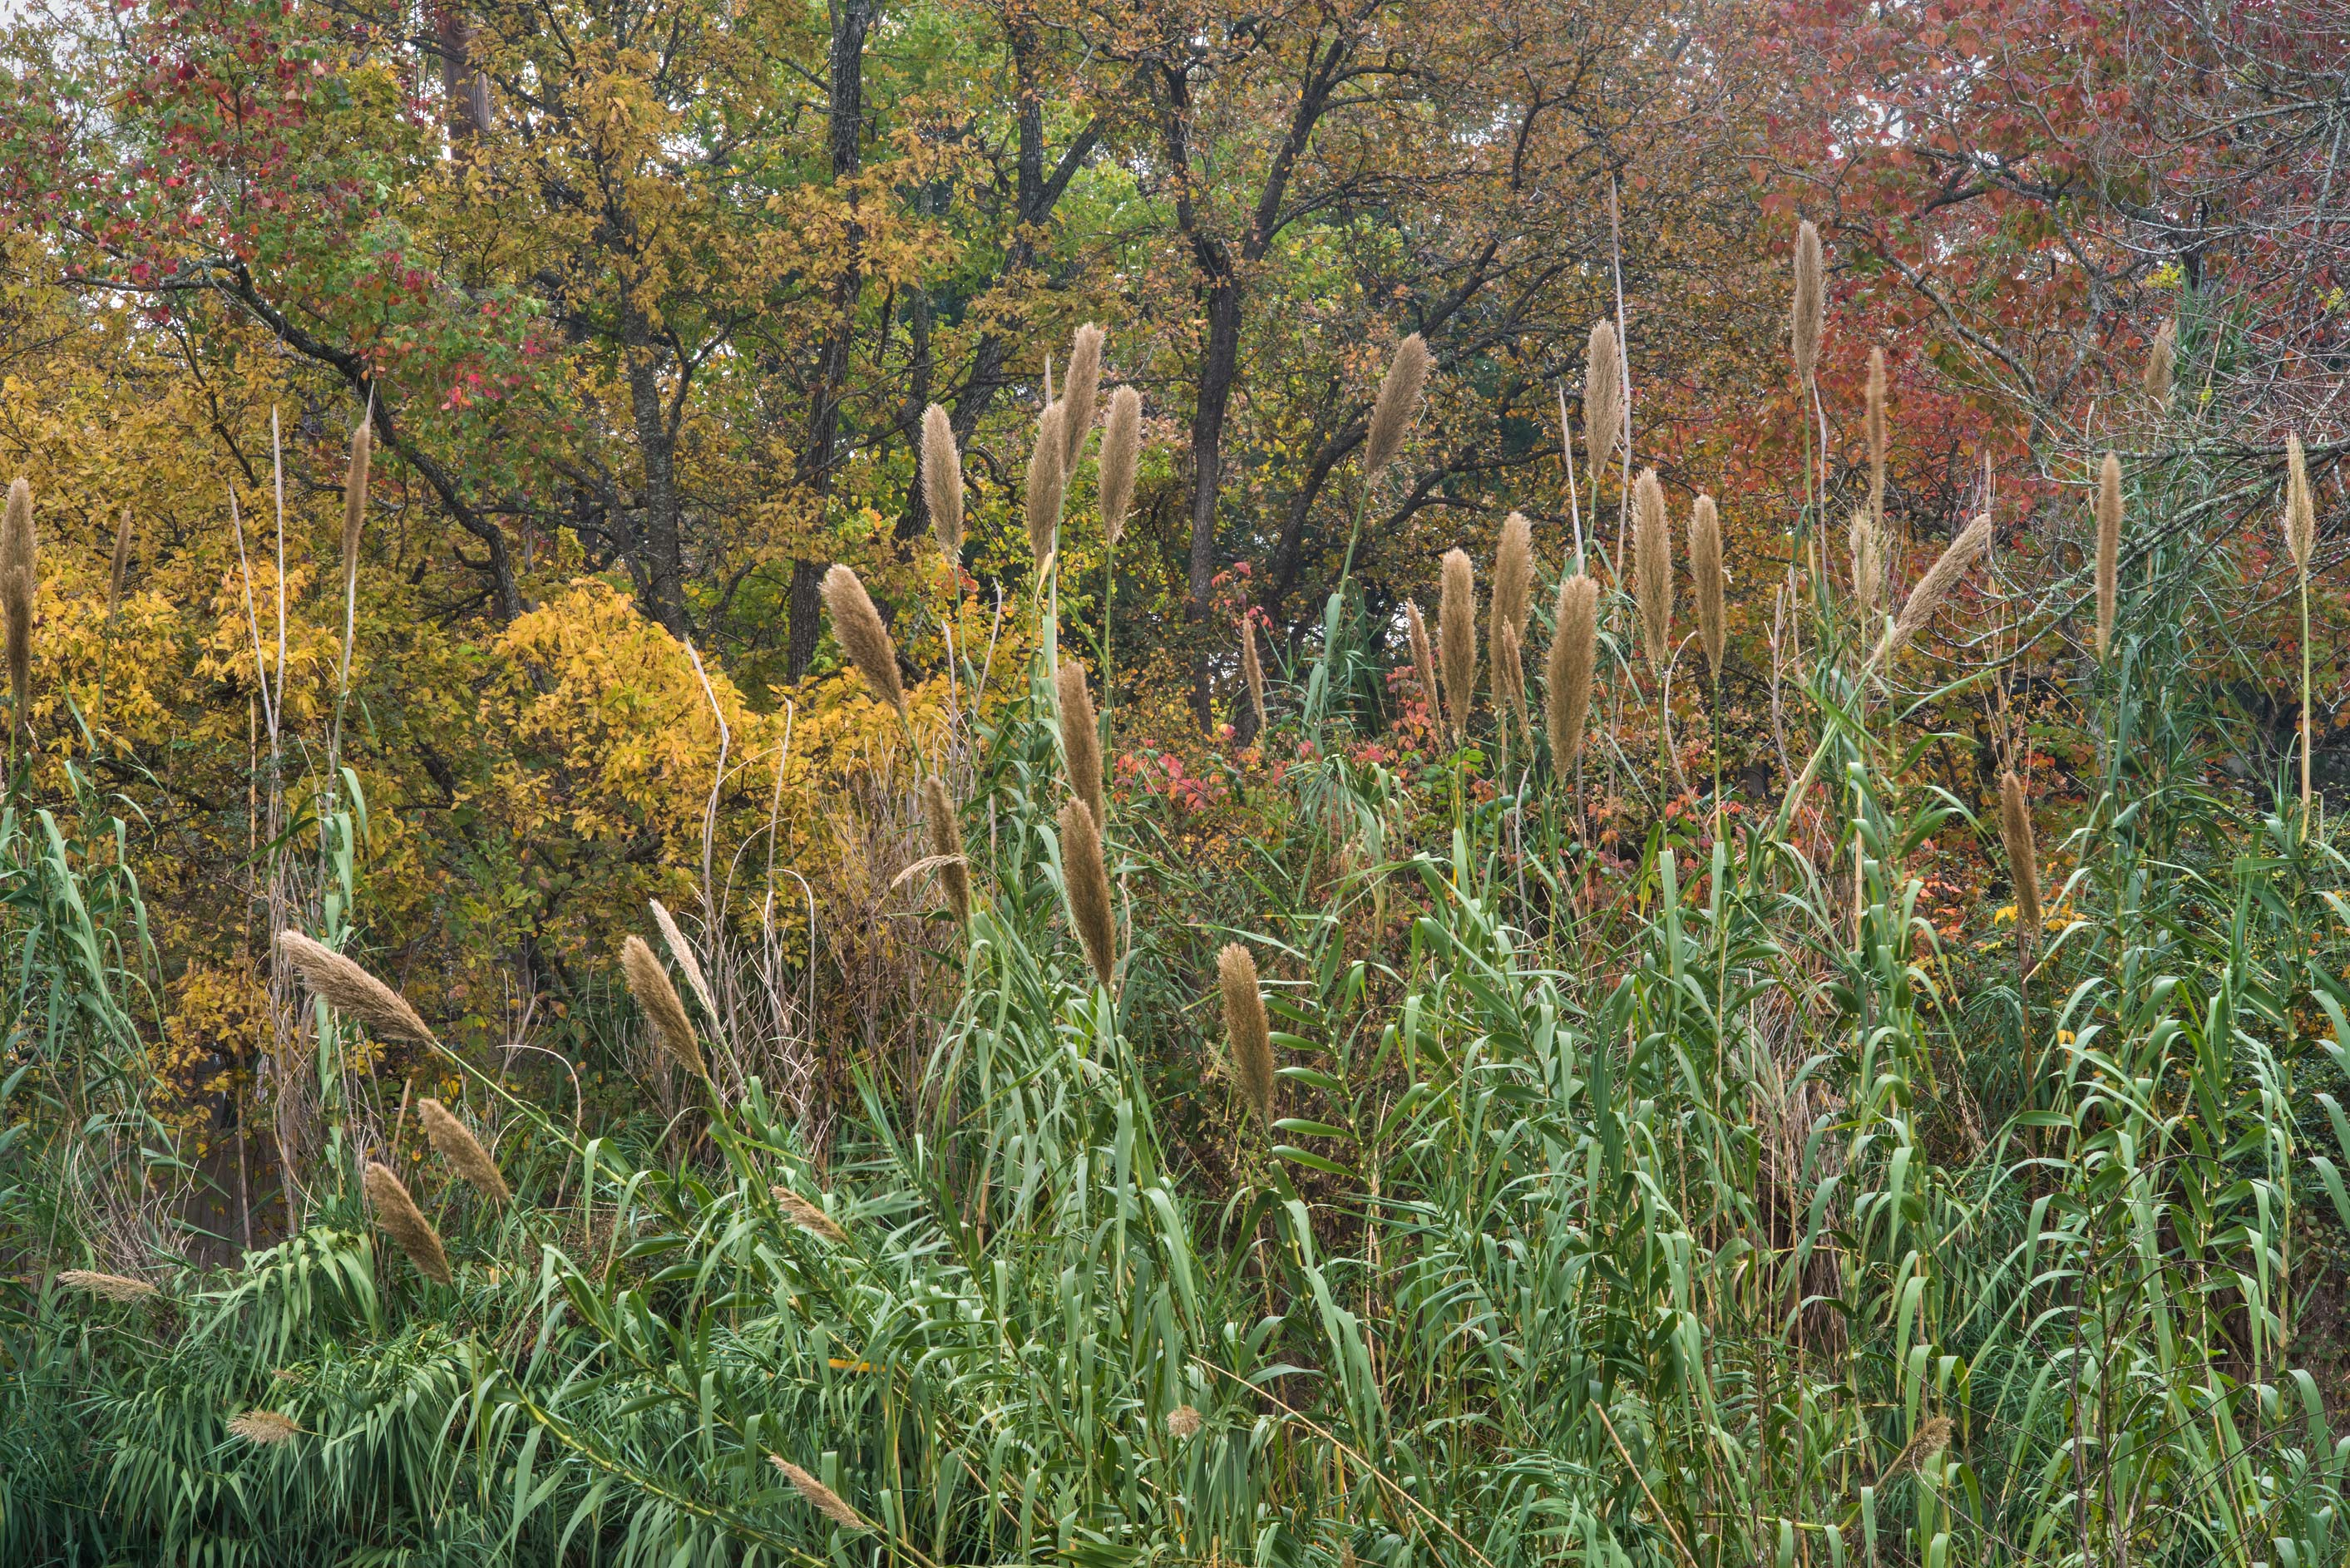 Reeds (giant cane, Arundo donax) in Bee Creek Park. College Station, Texas